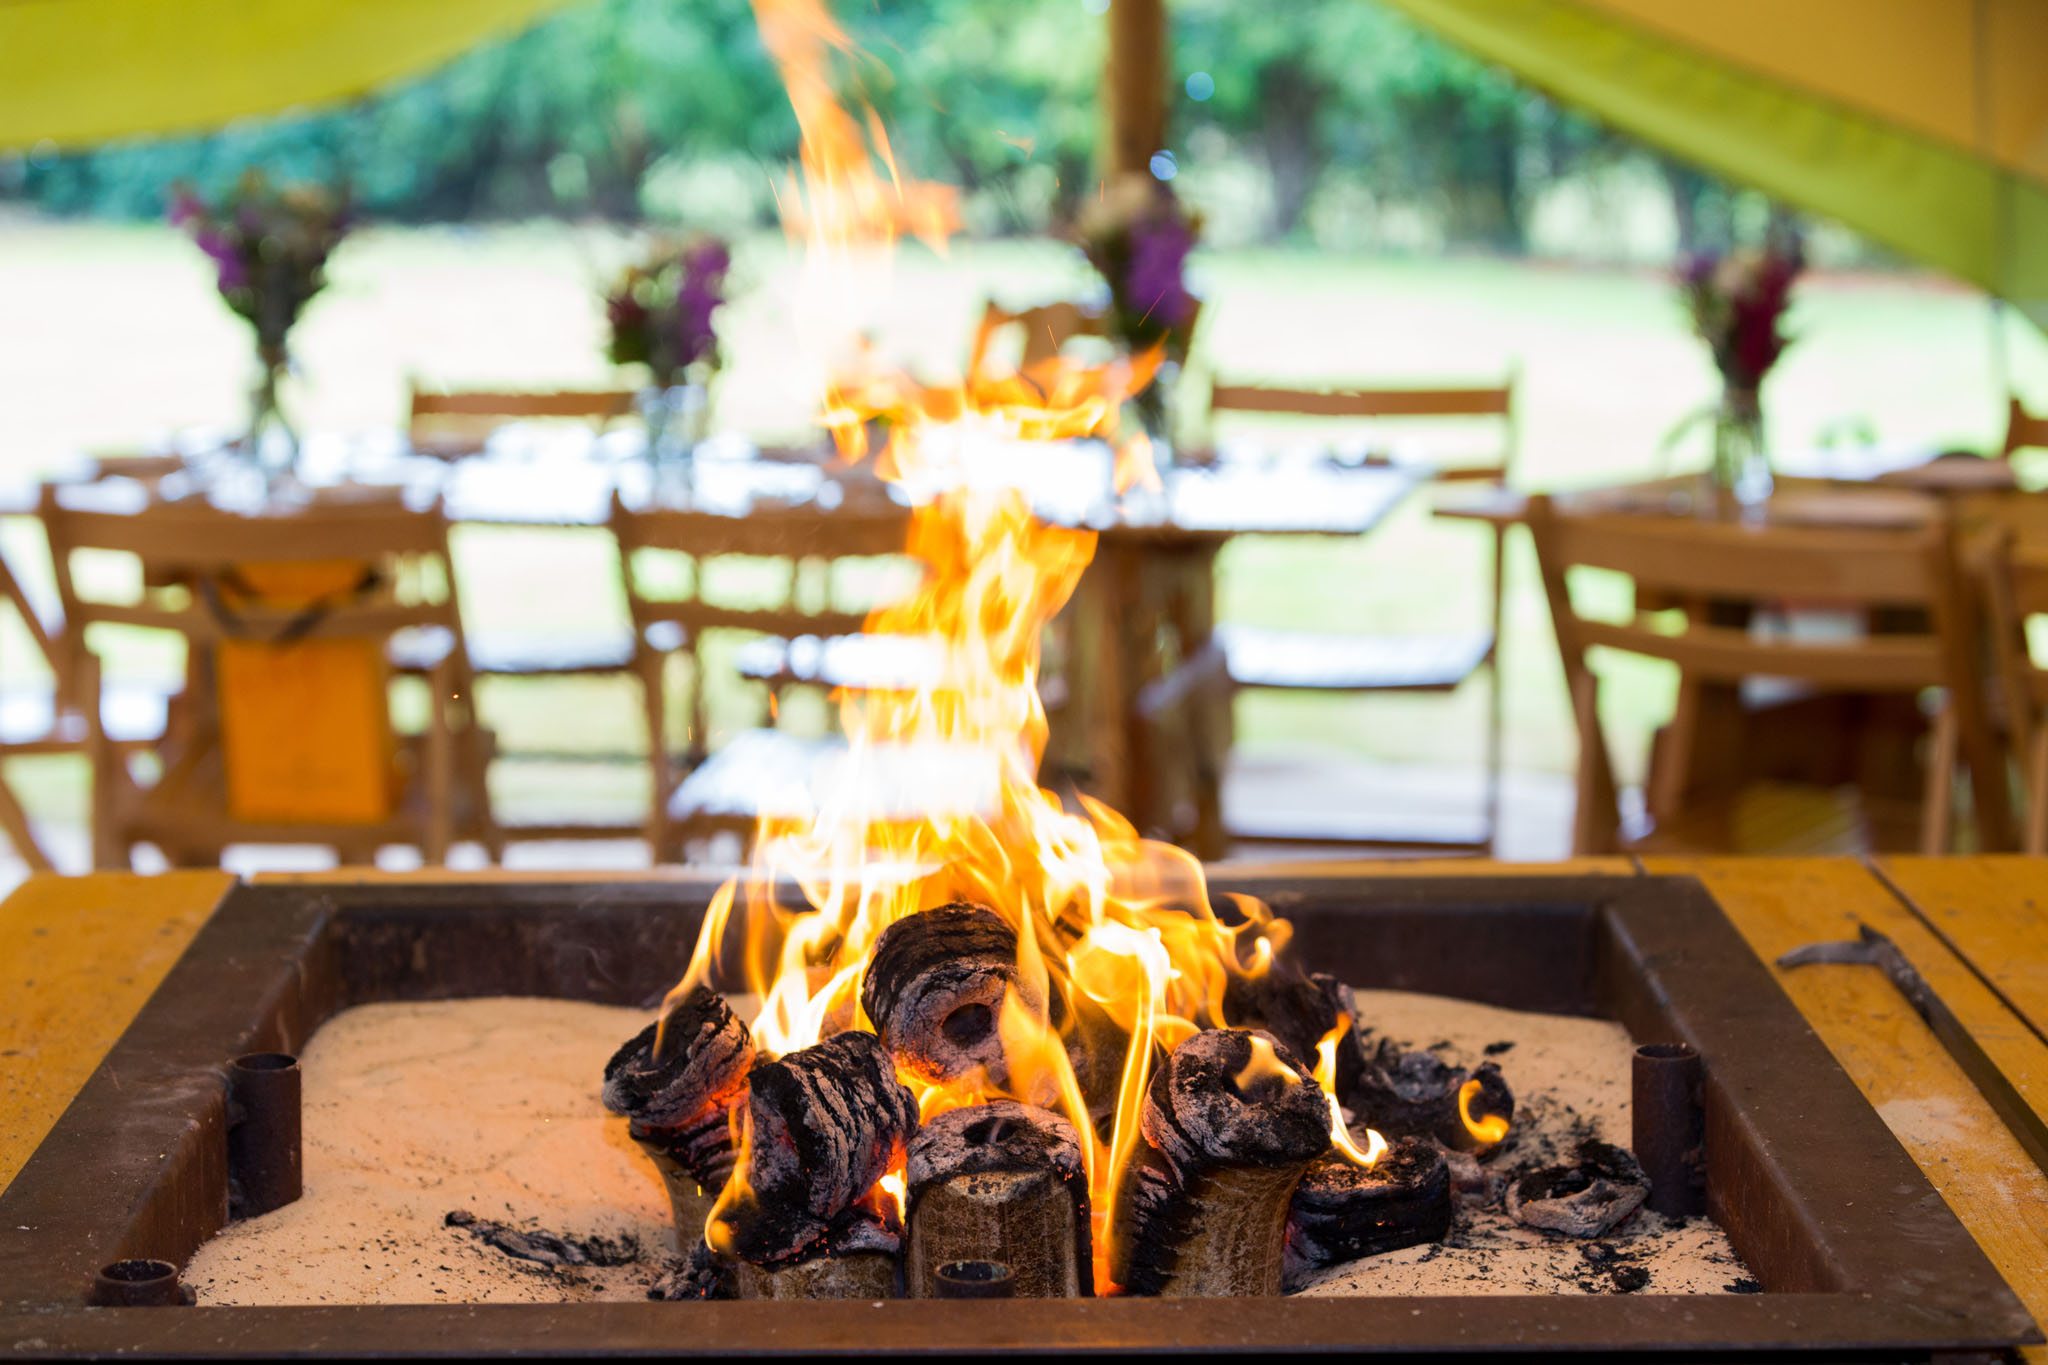 Fire pit at a family celebration in a teepee in Crewe Green in Cheshire